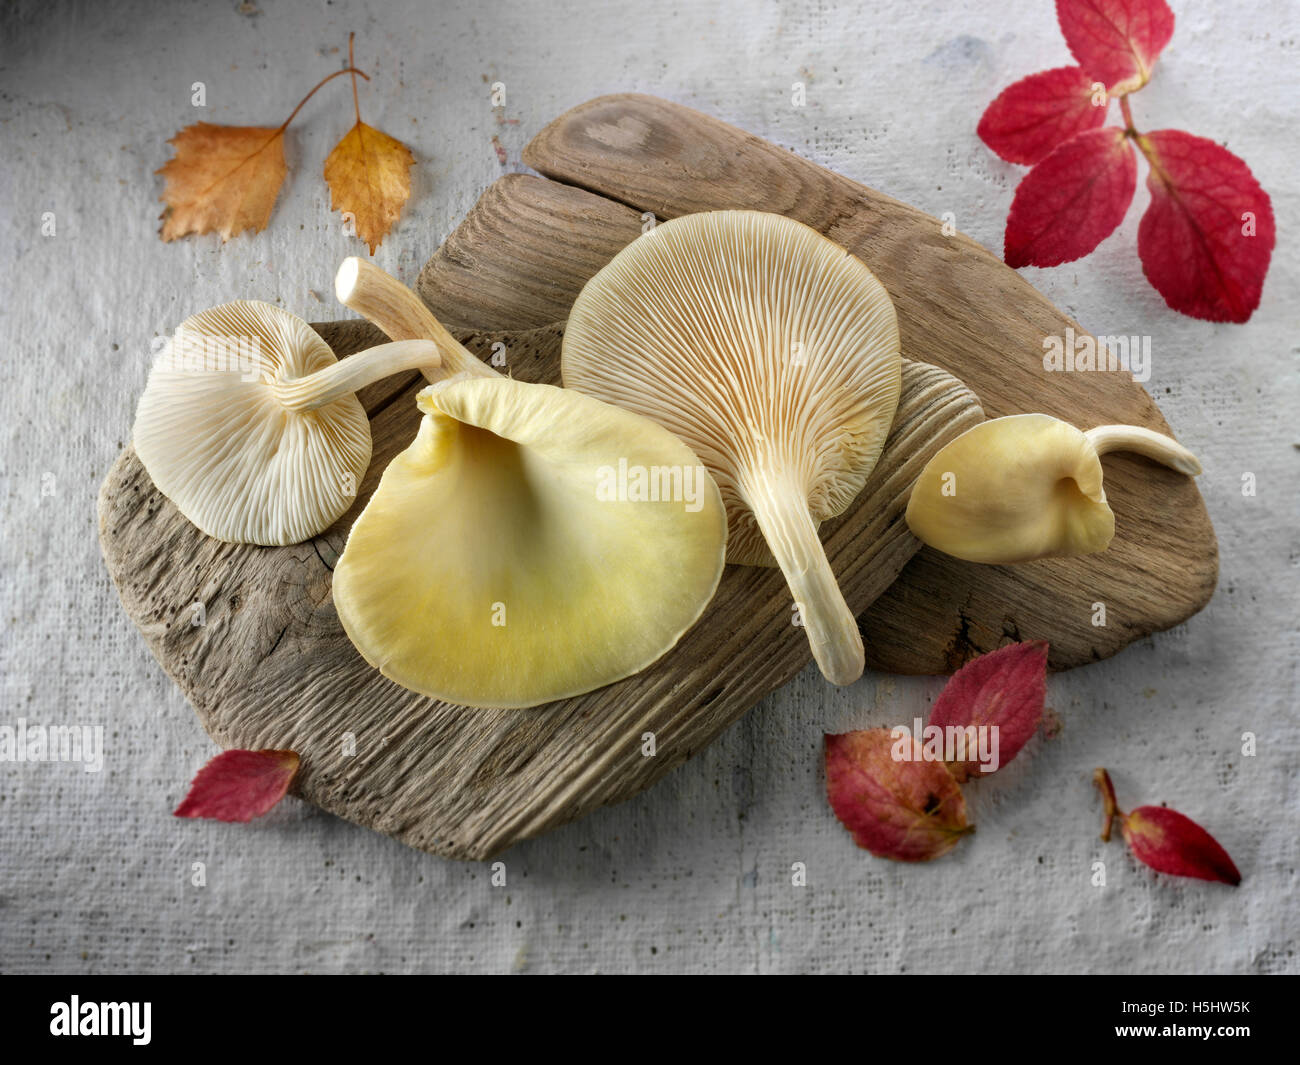 A jaune ou d'or comestible pleurotes (Pleurotus citrinopileatus) Photo Stock